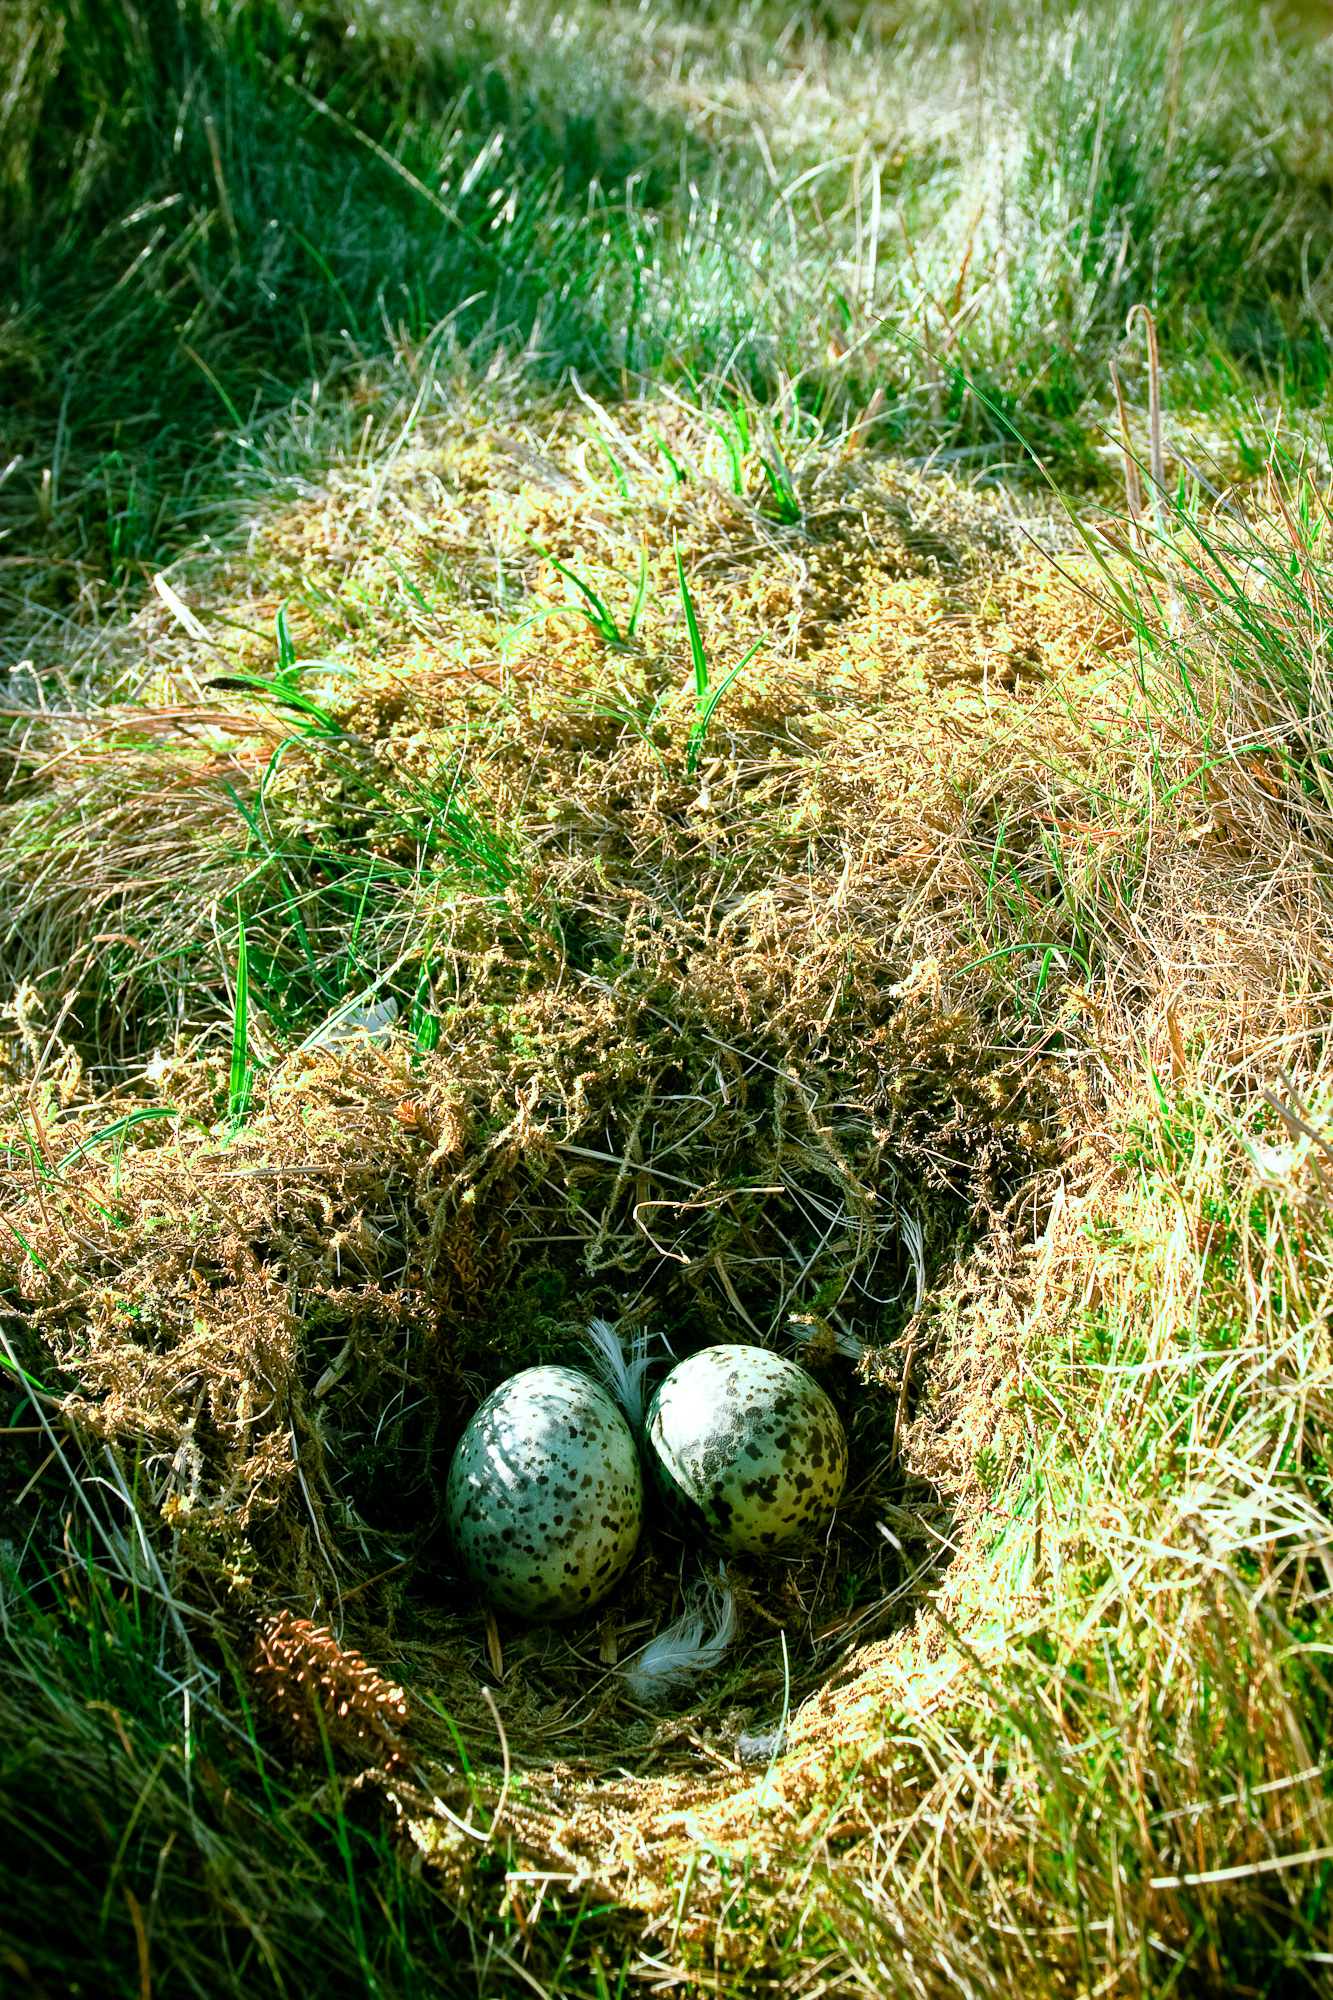 Nest with eggs, Bird, Camouflage, Eggs, Grass, HQ Photo